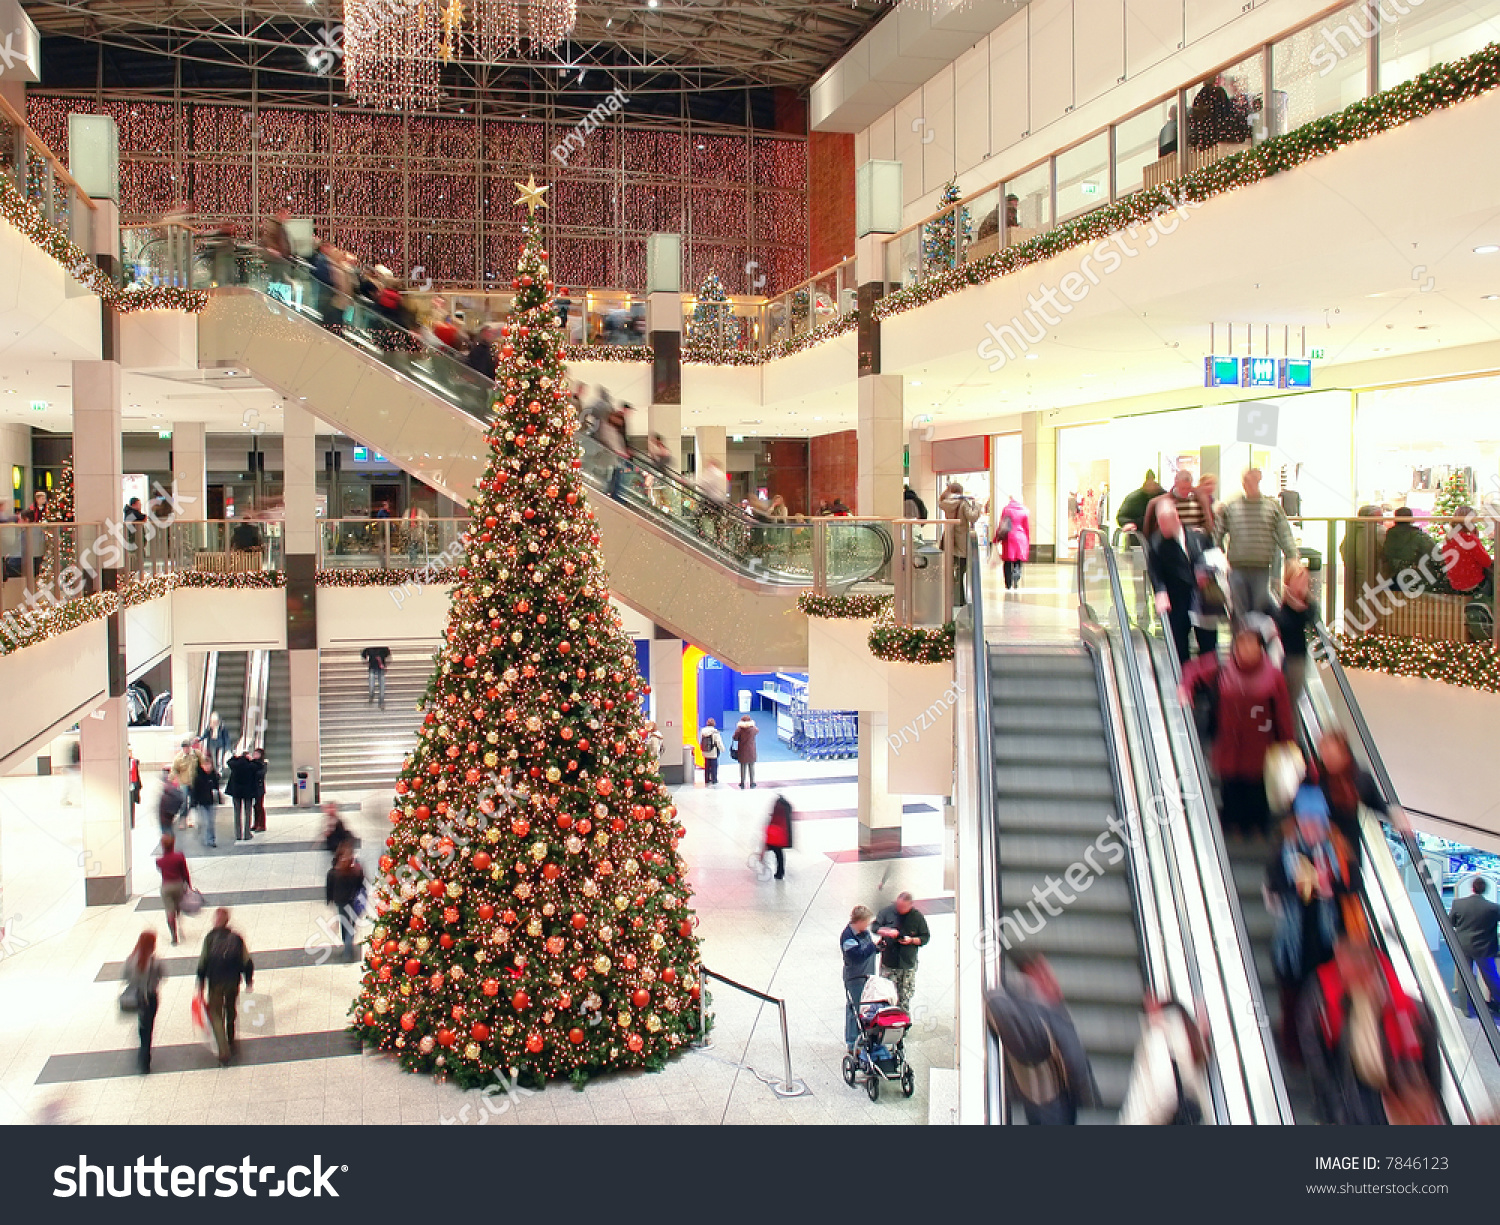 Giant Christmas Tree Shopping Mall Stock Photo 7846123 - Shutterstock